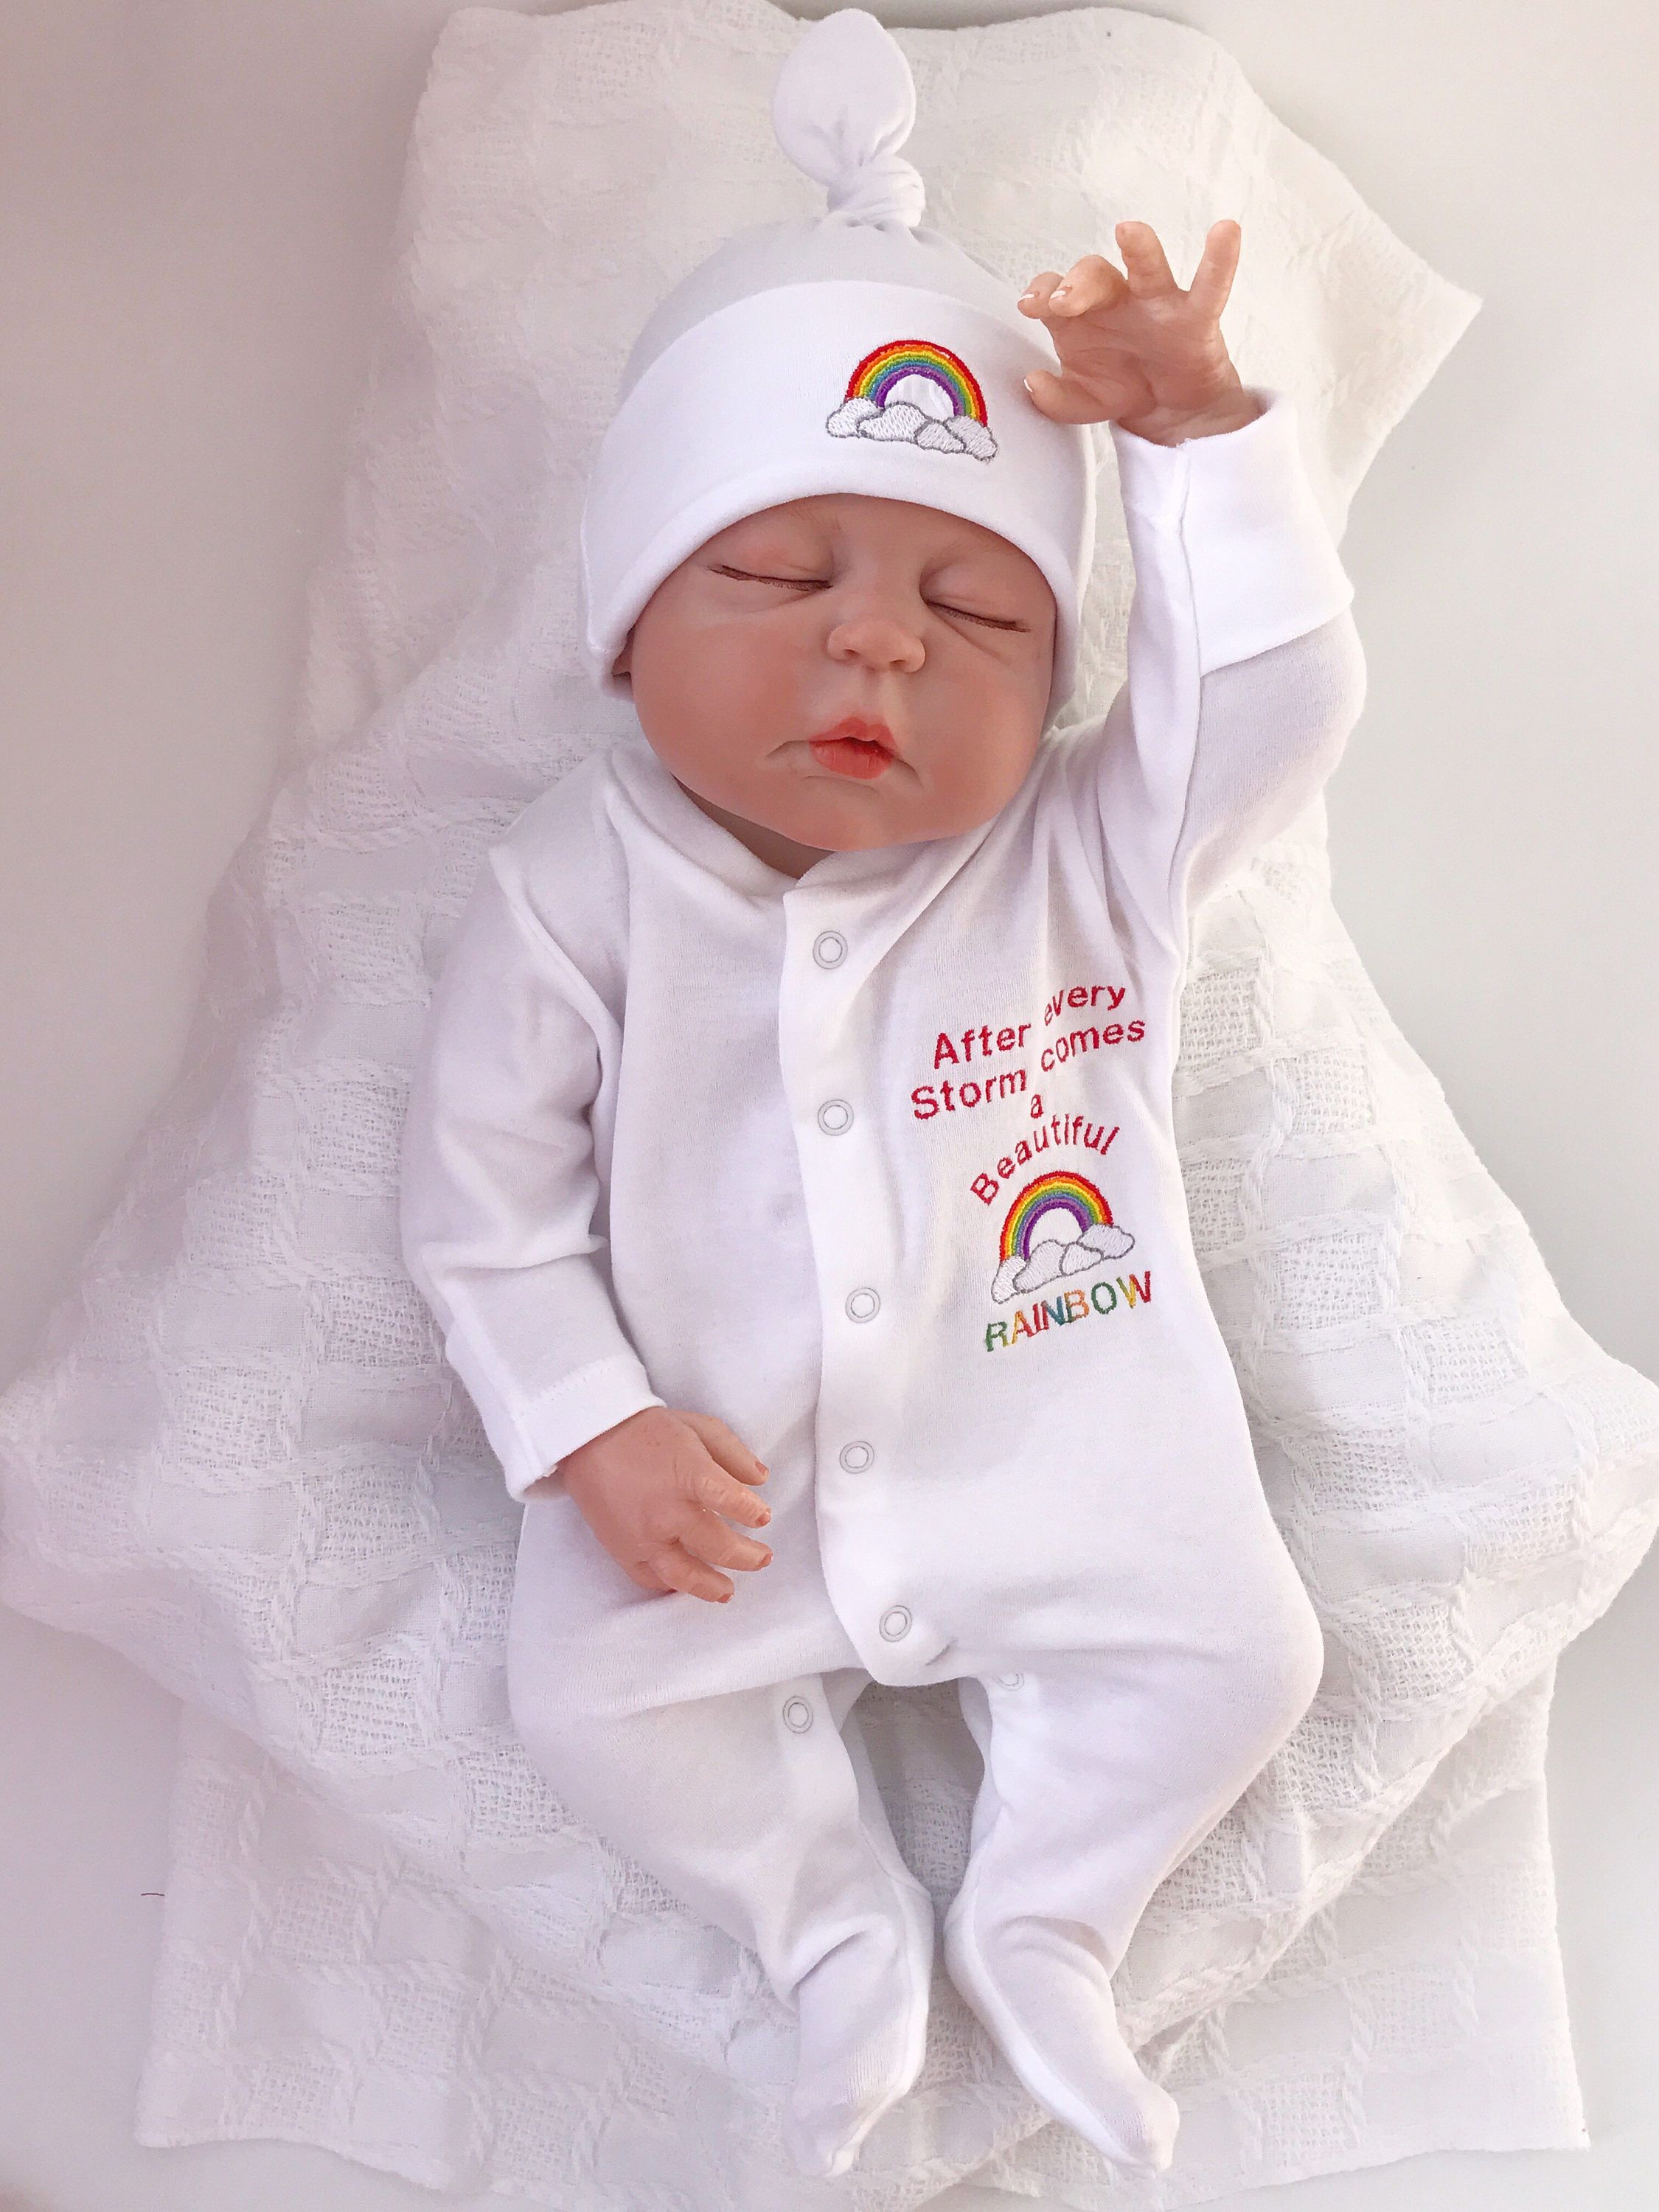 Rainbow Baby Clothes, Baby Shower Gifts, Rainbow Baby, Baby Girl